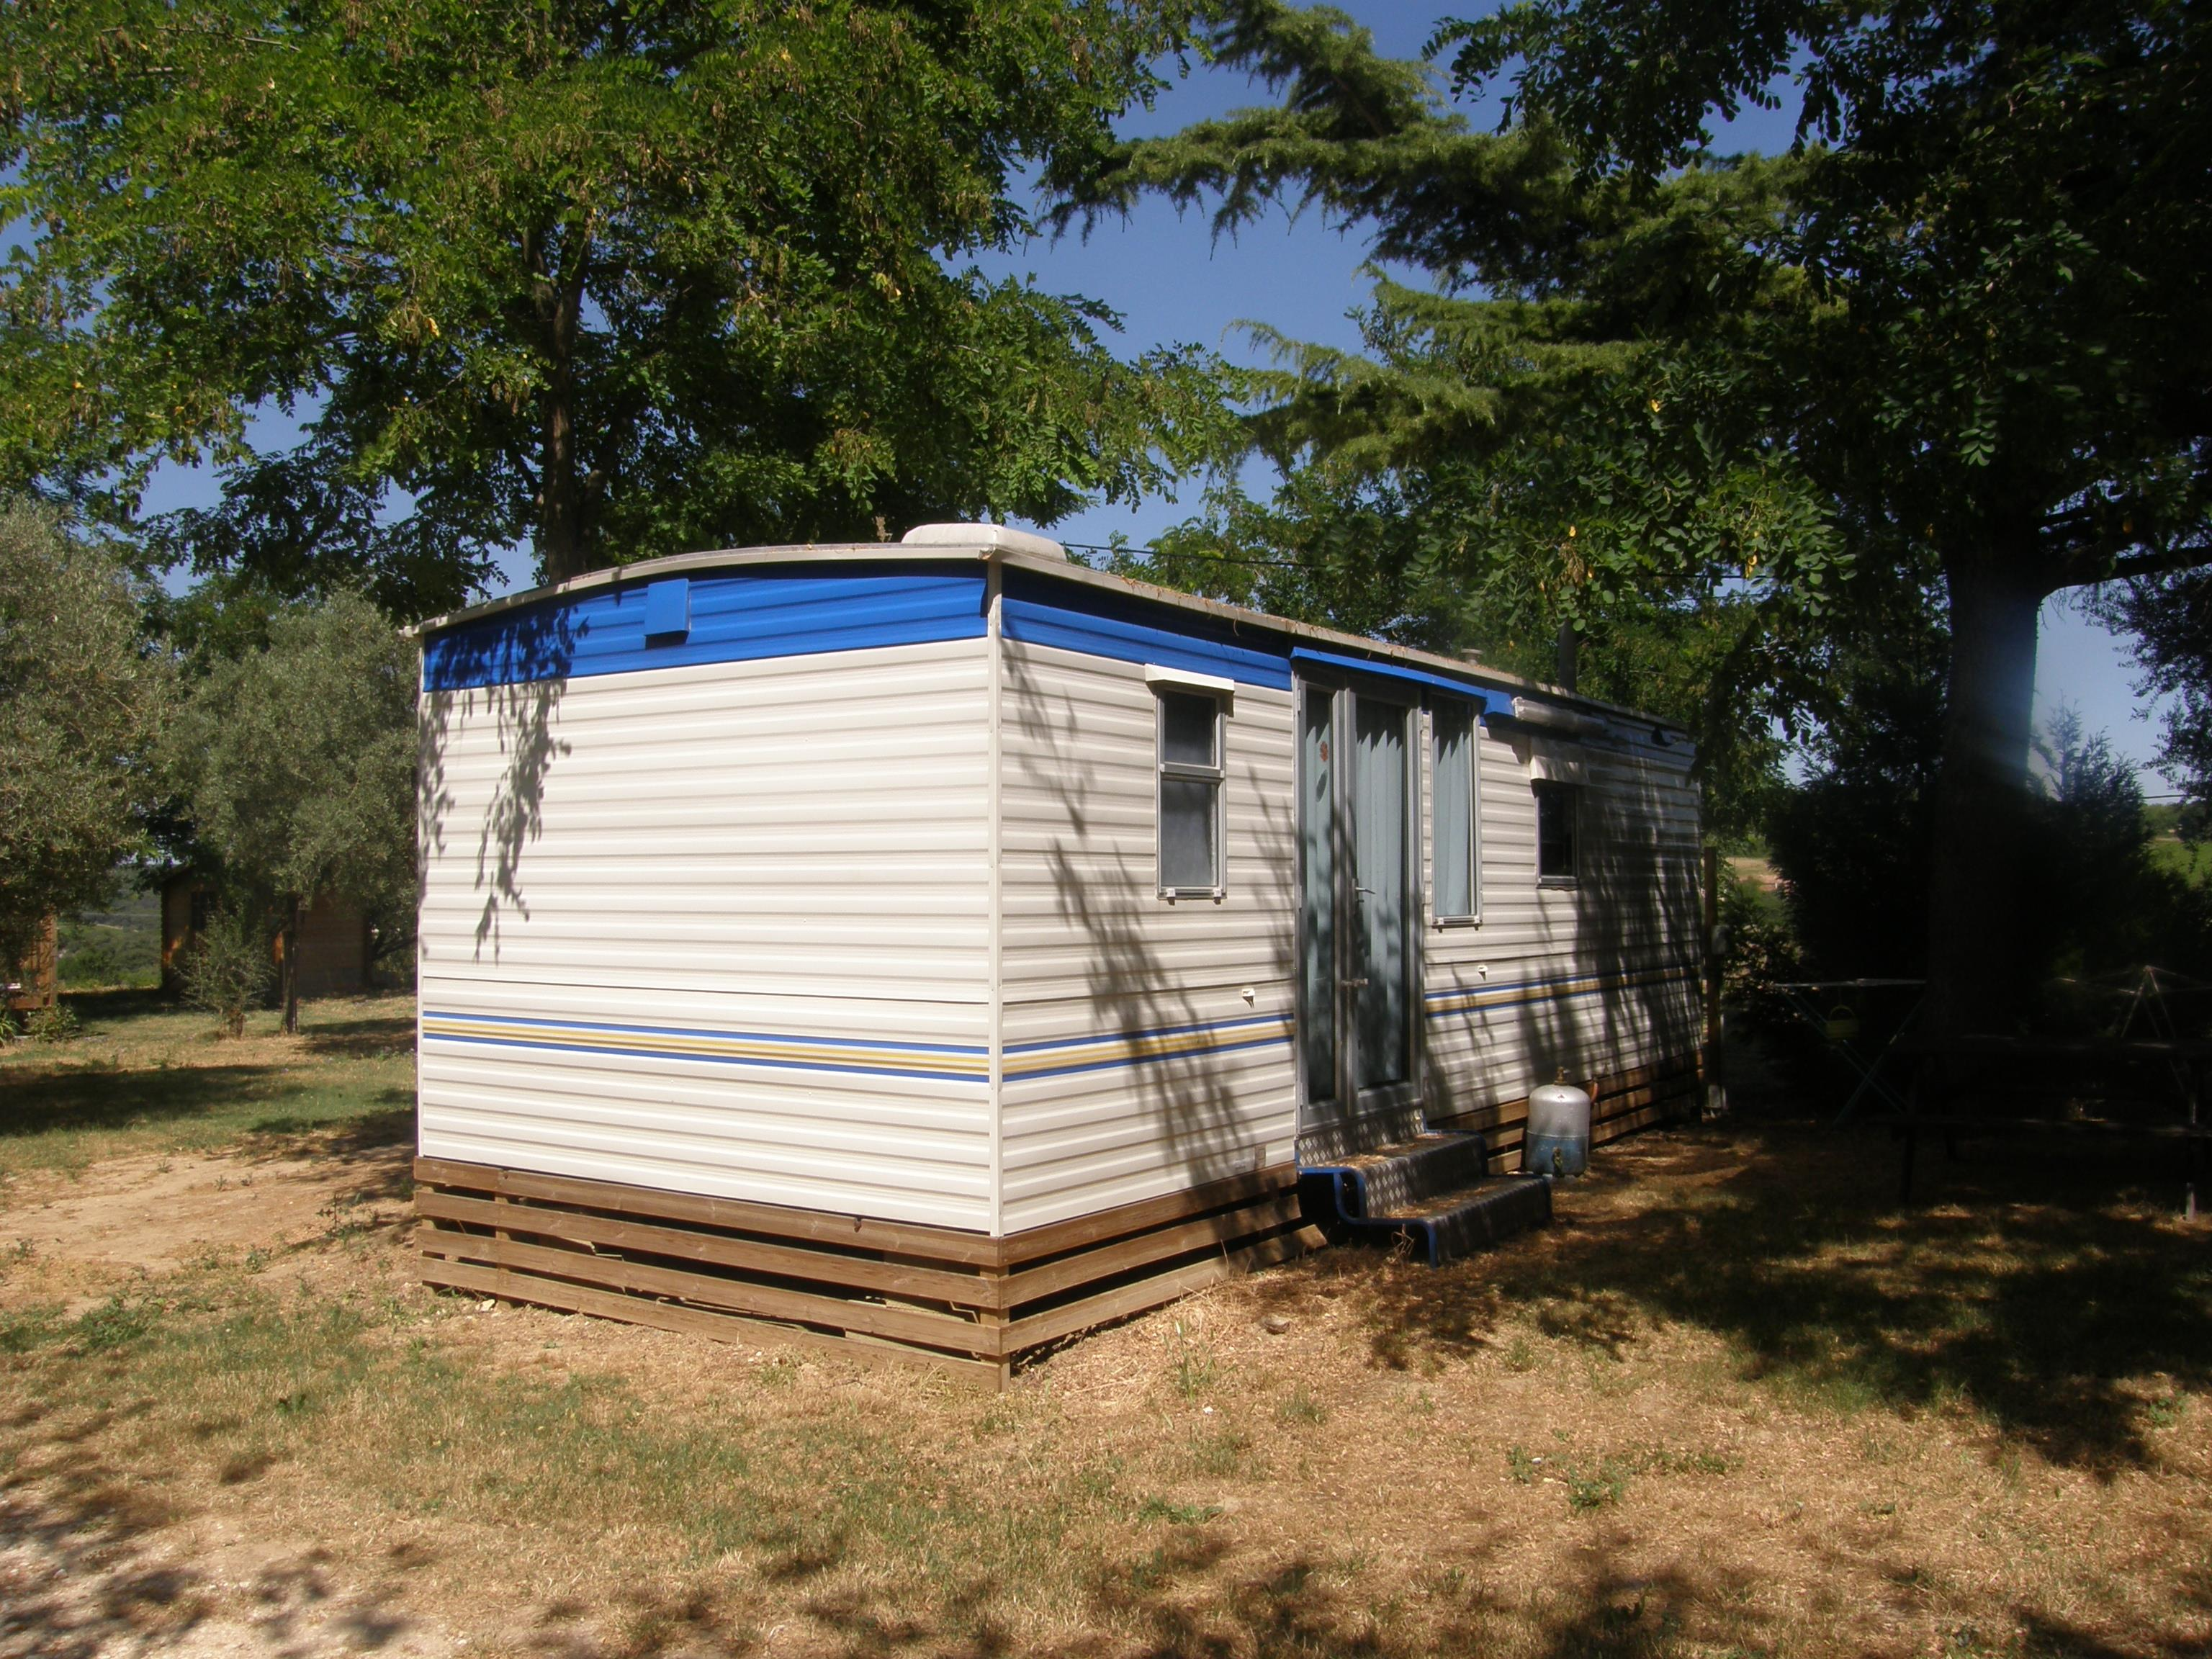 Accommodation - Mobile Home 2 Bedrooms (+ 10 Years) - CAMPING LES TRUFFIERES***